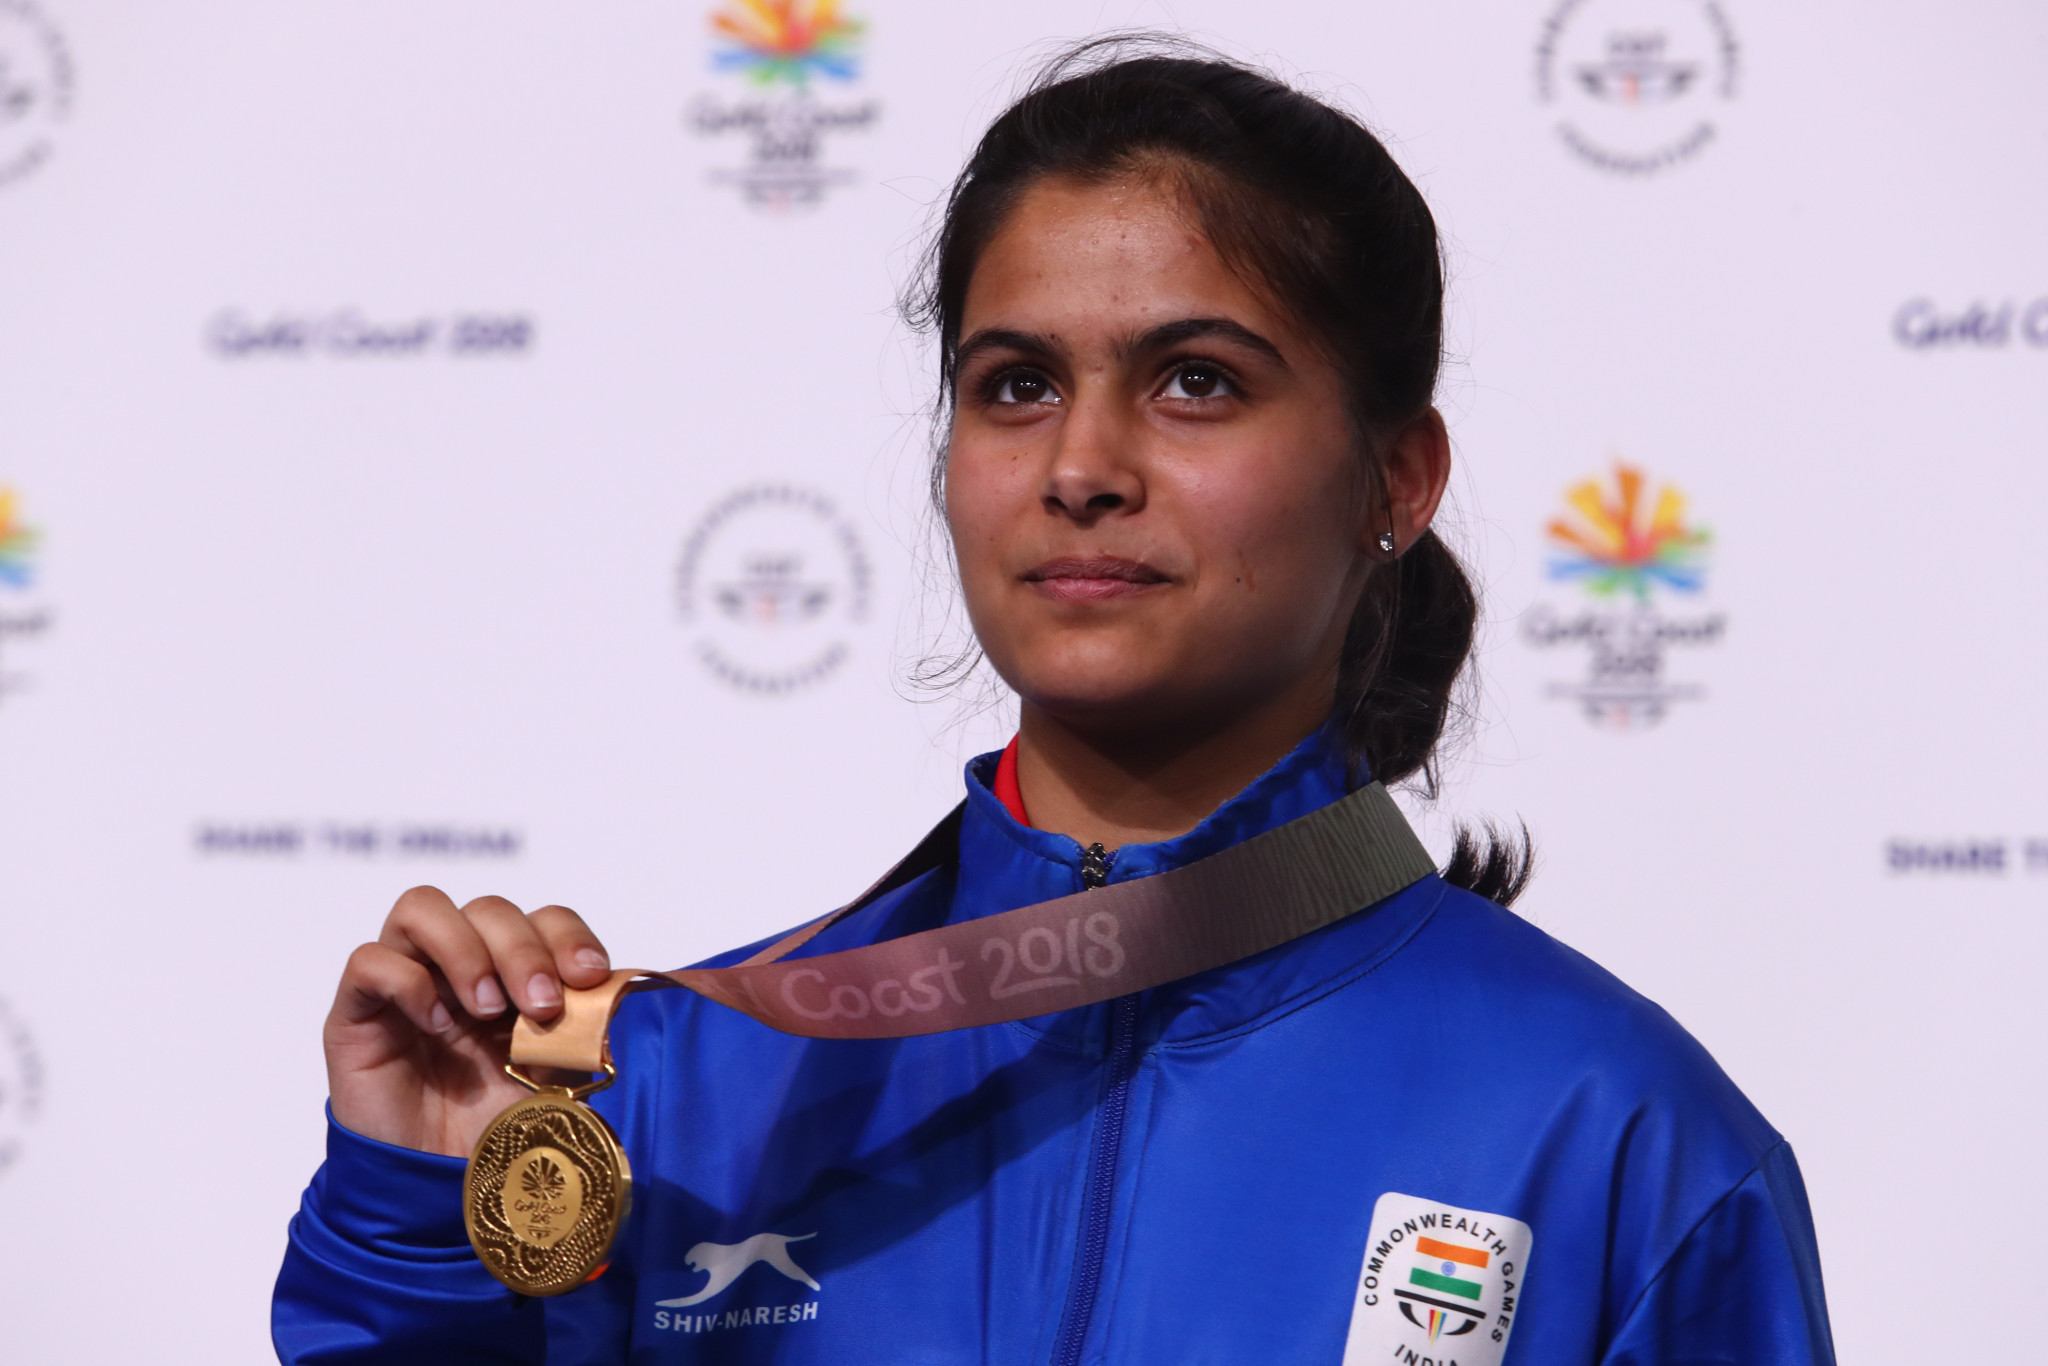 Manu Bhaker was one of the young Indian athletes to attend ©Getty Images